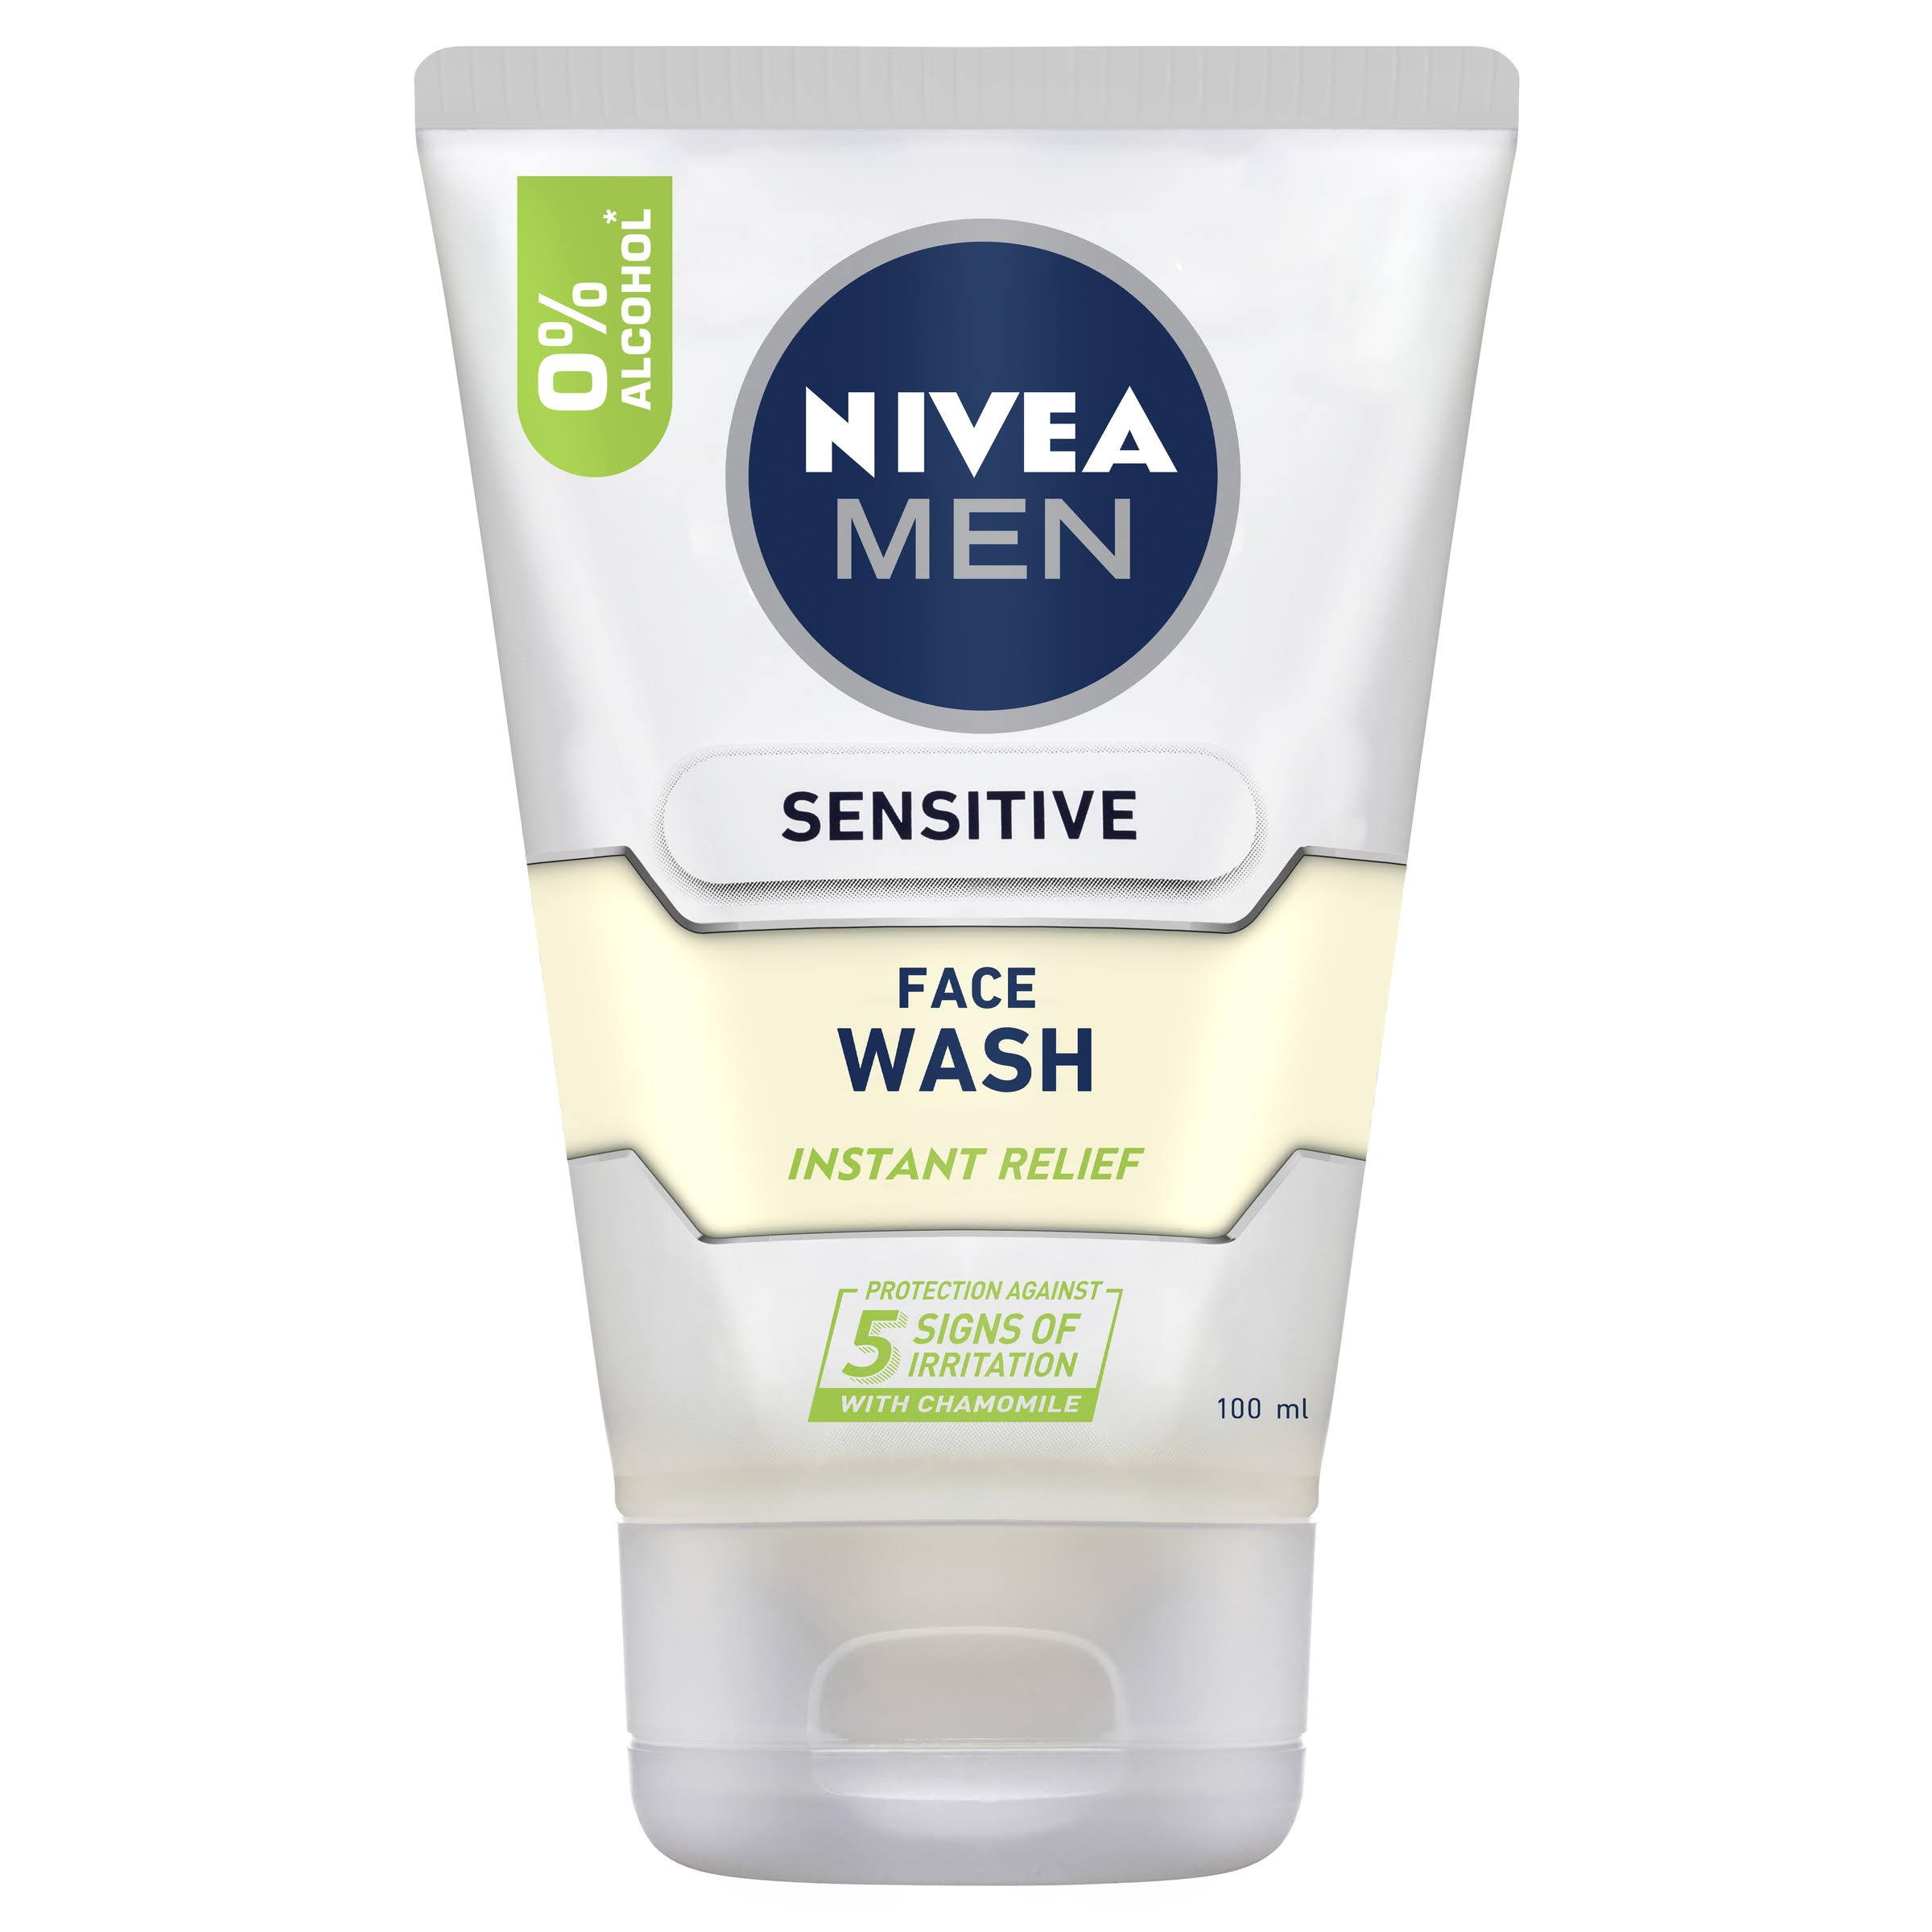 Nivea Men's Sensitive Face Wash - 100ml